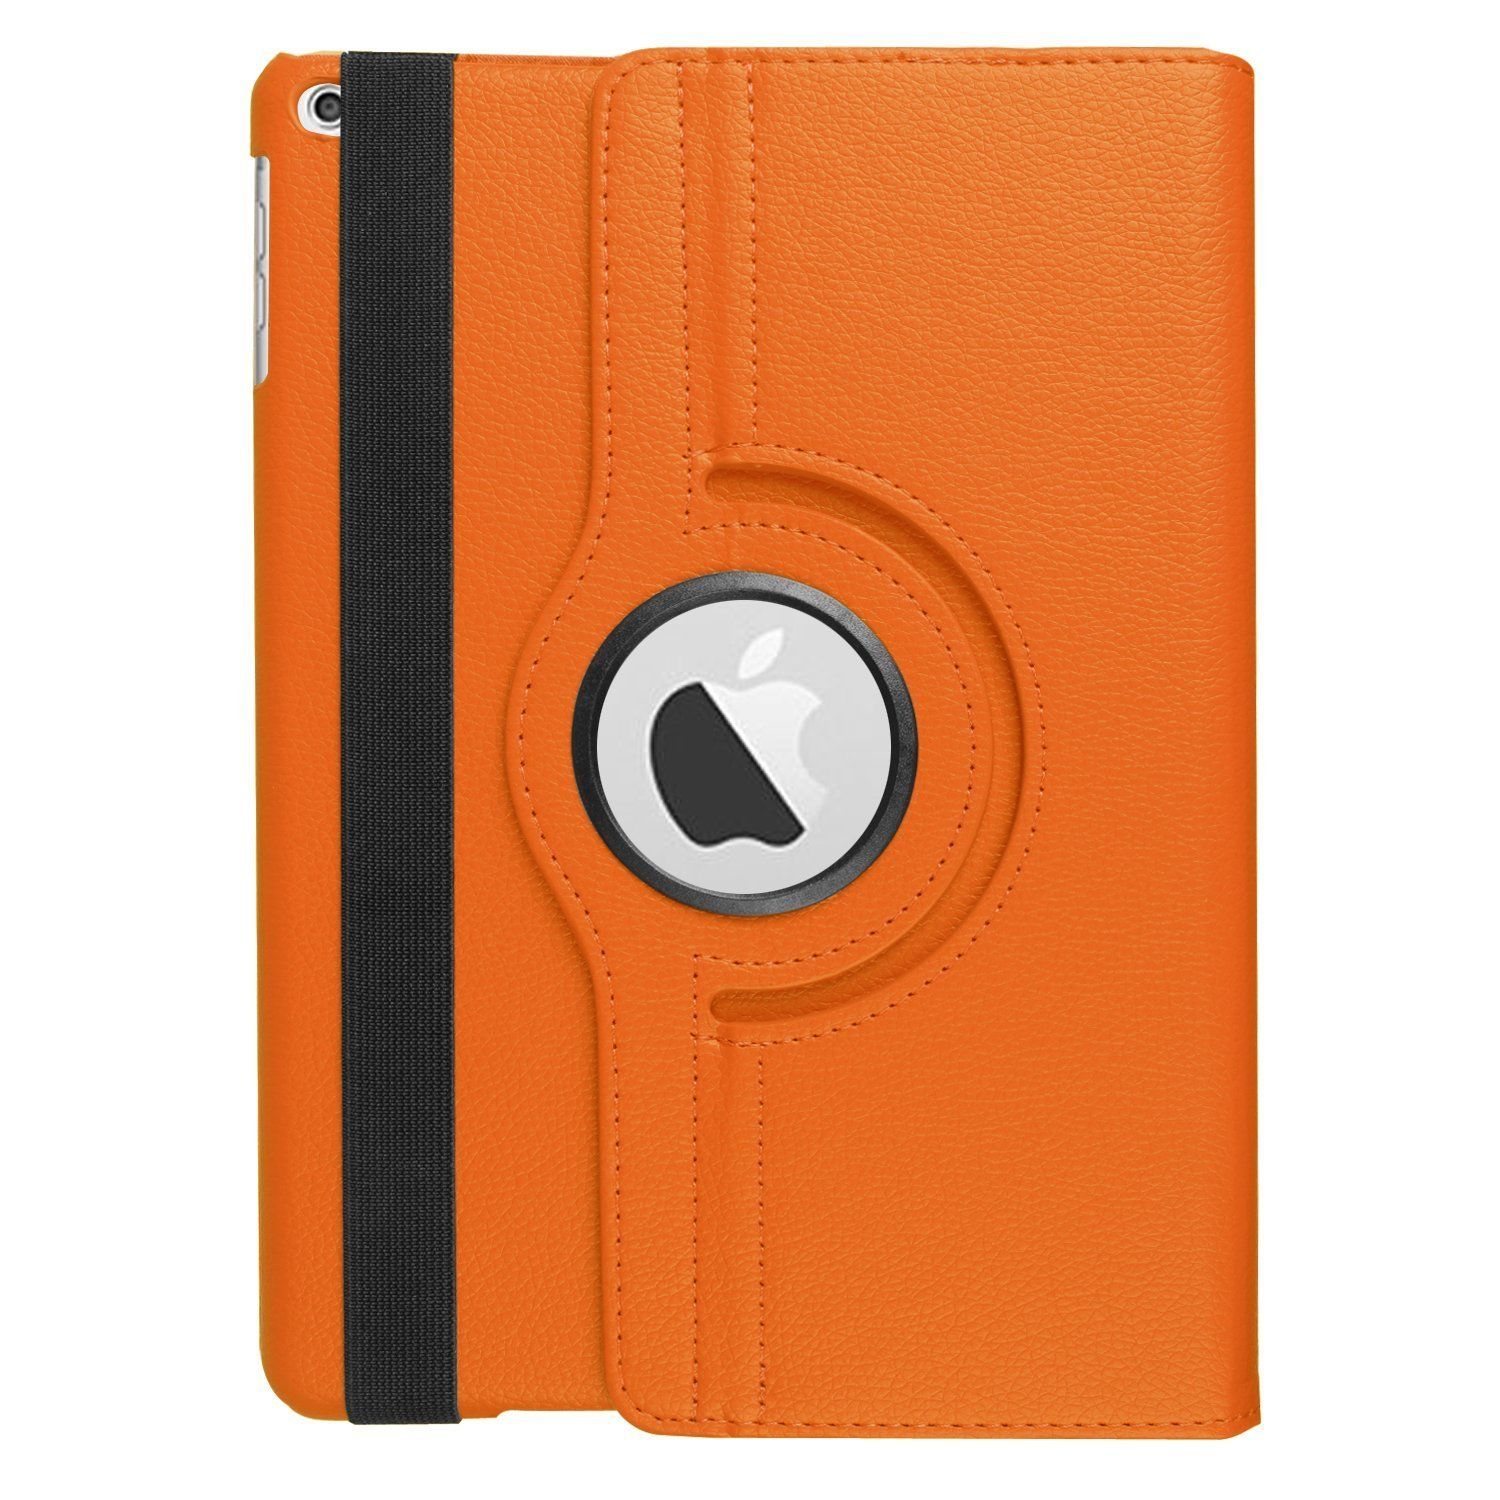 Custodia-per-Apple-iPad-Pro-2017-iPad-Air-3-10-5-Smart-Cover-Case-Custodia-Protettiva miniatura 87